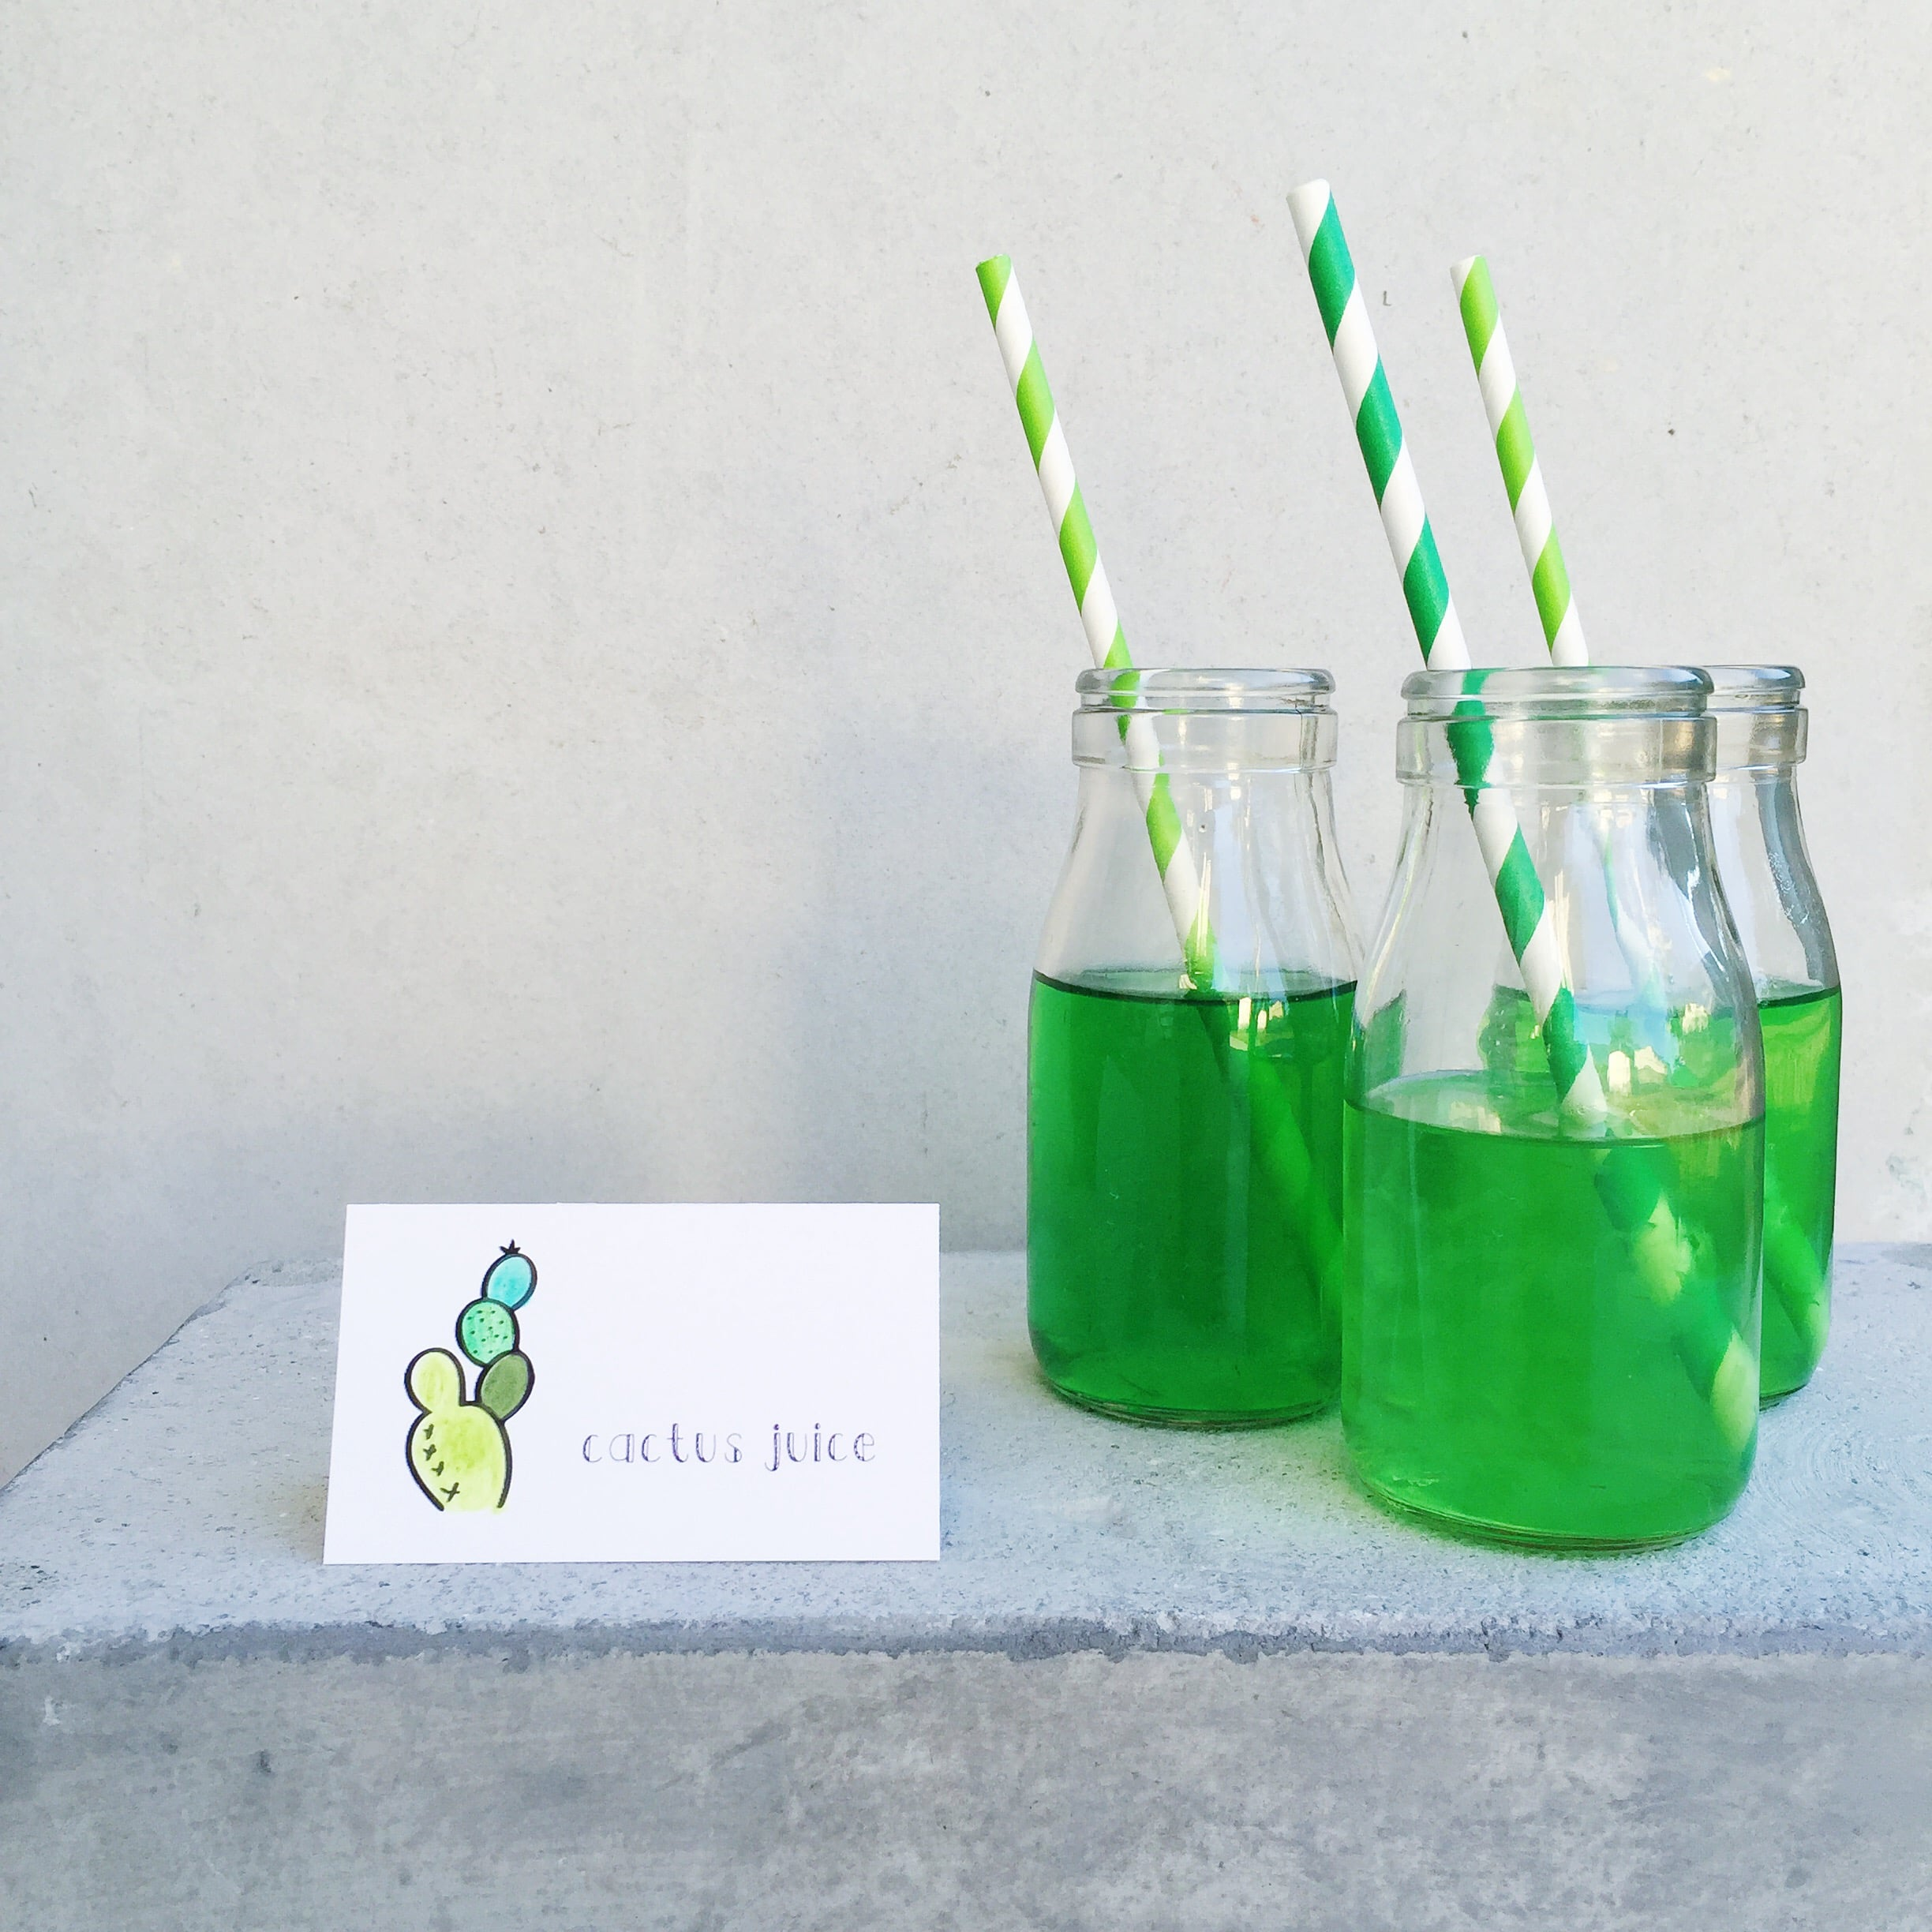 cactus juice and table tag | mrtimothyjames